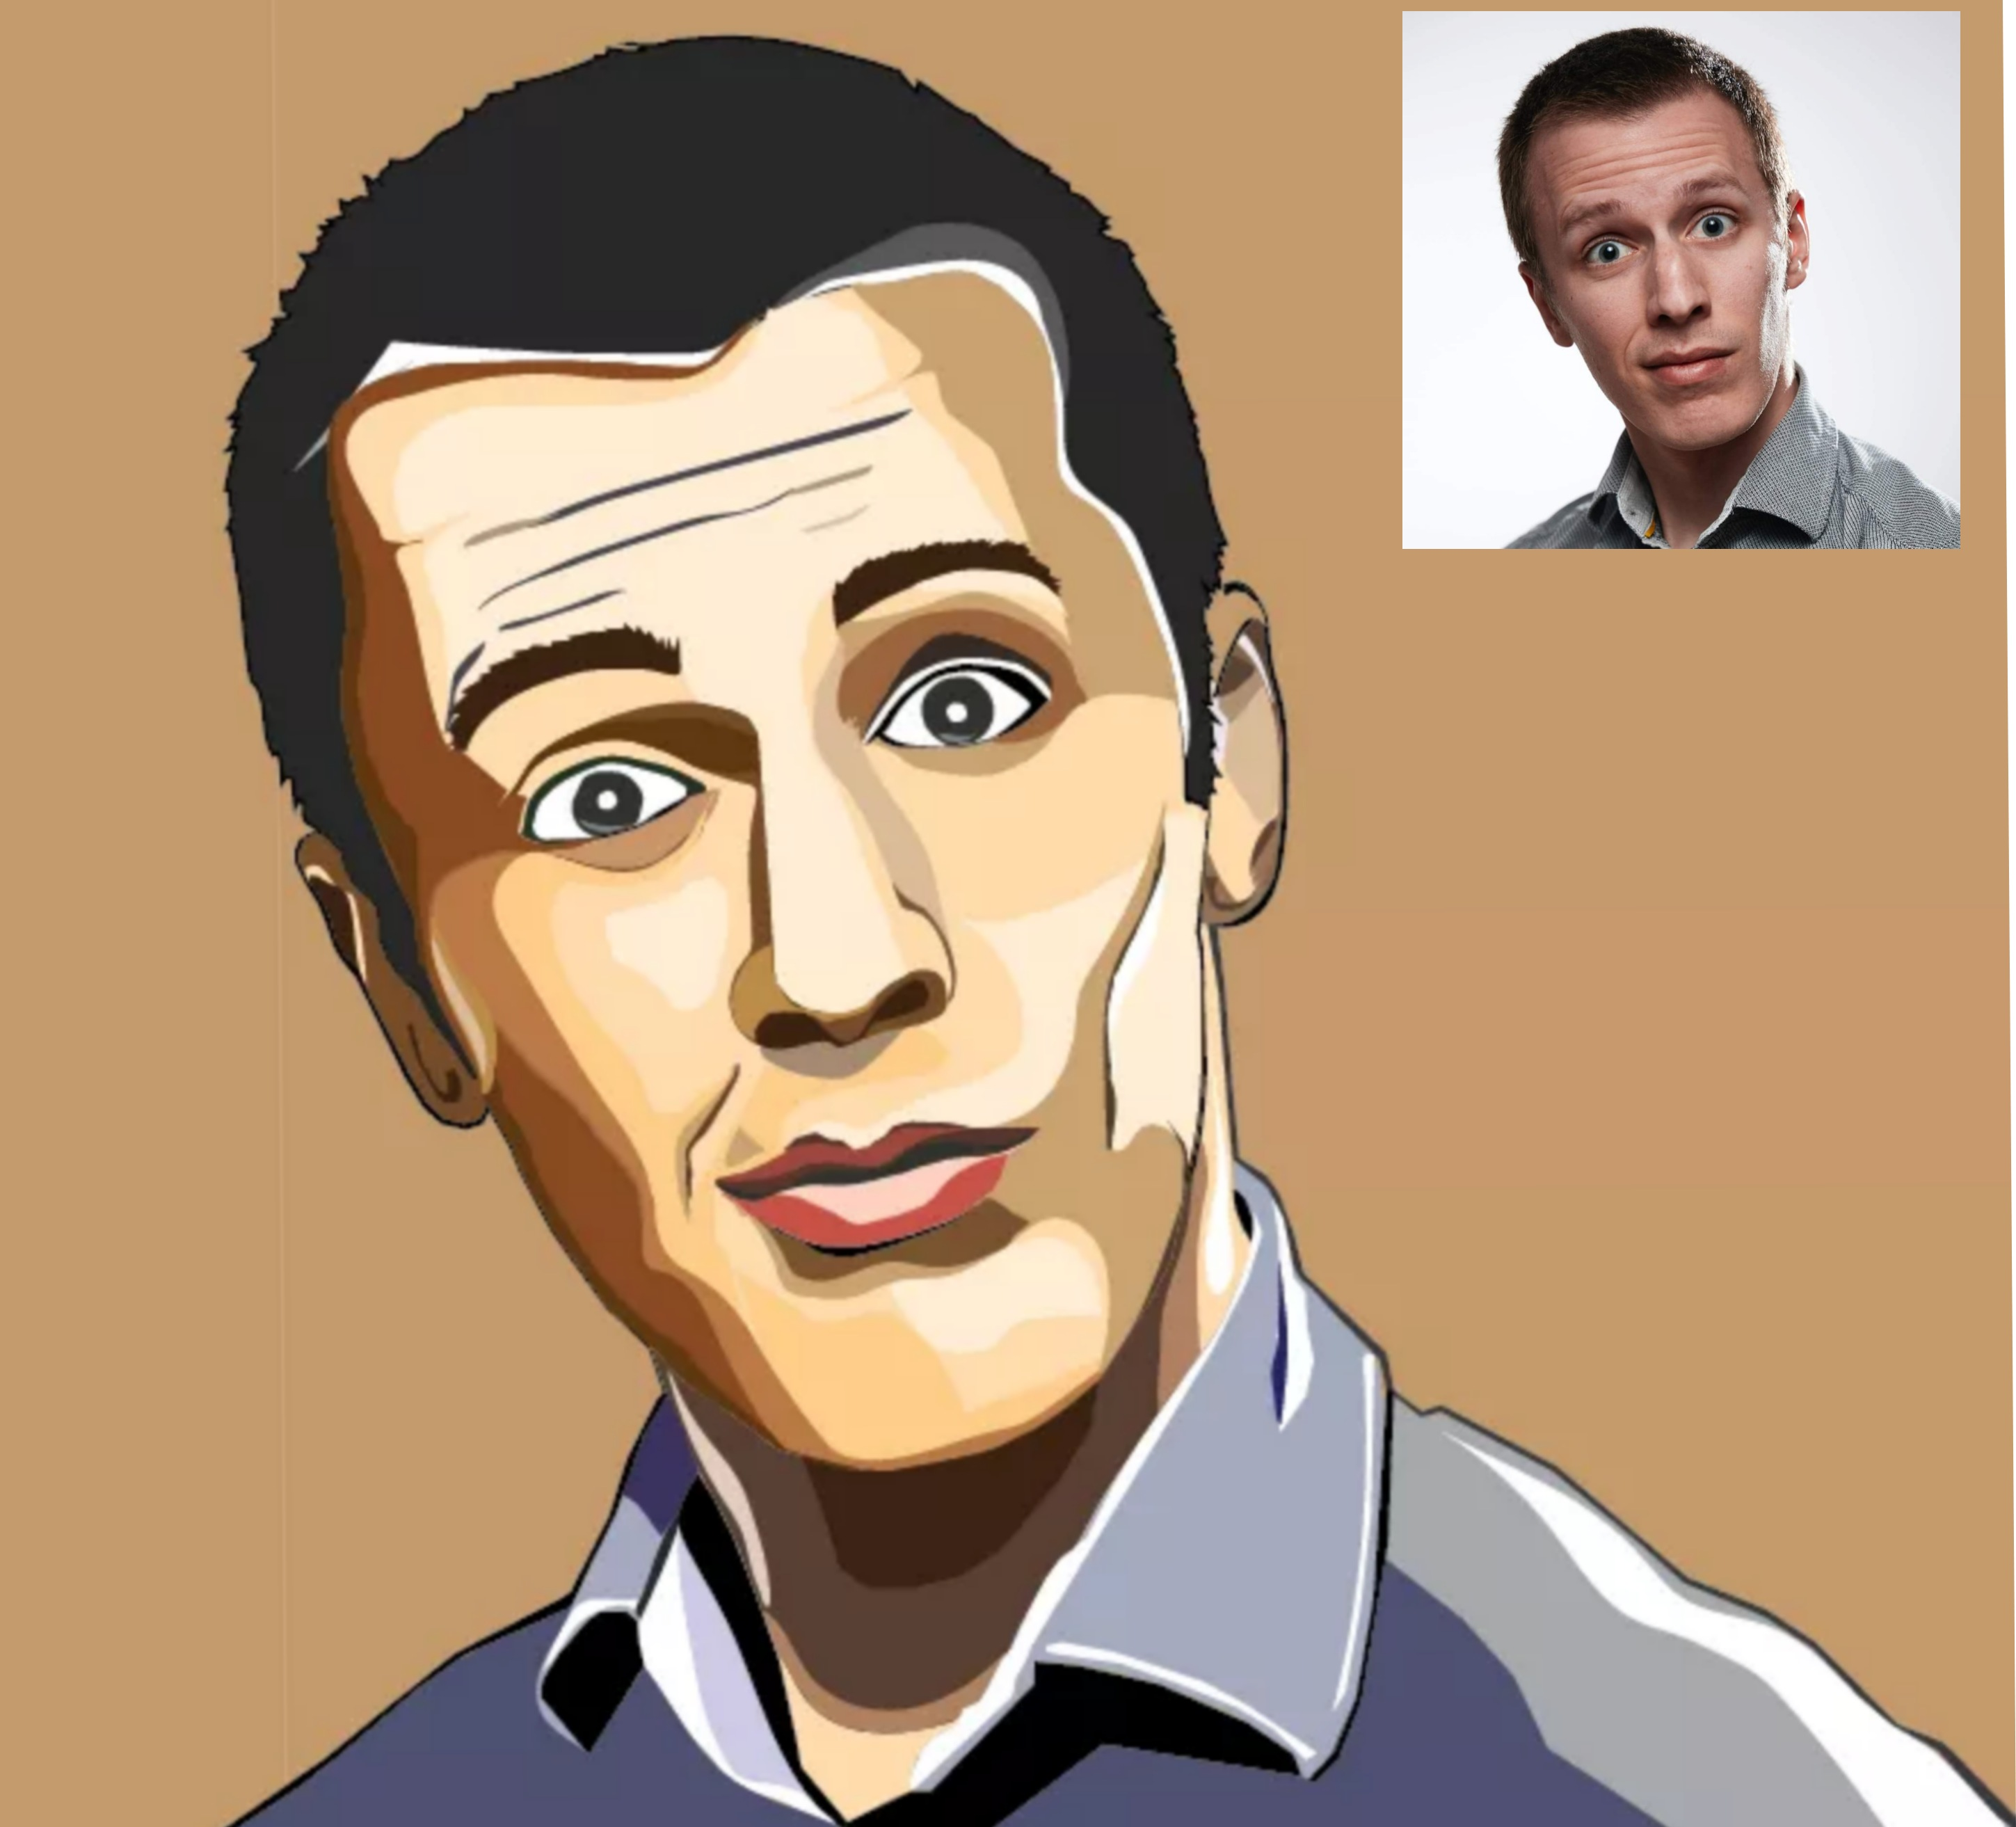 I will draw cartoon vector portrait traceable for your photo